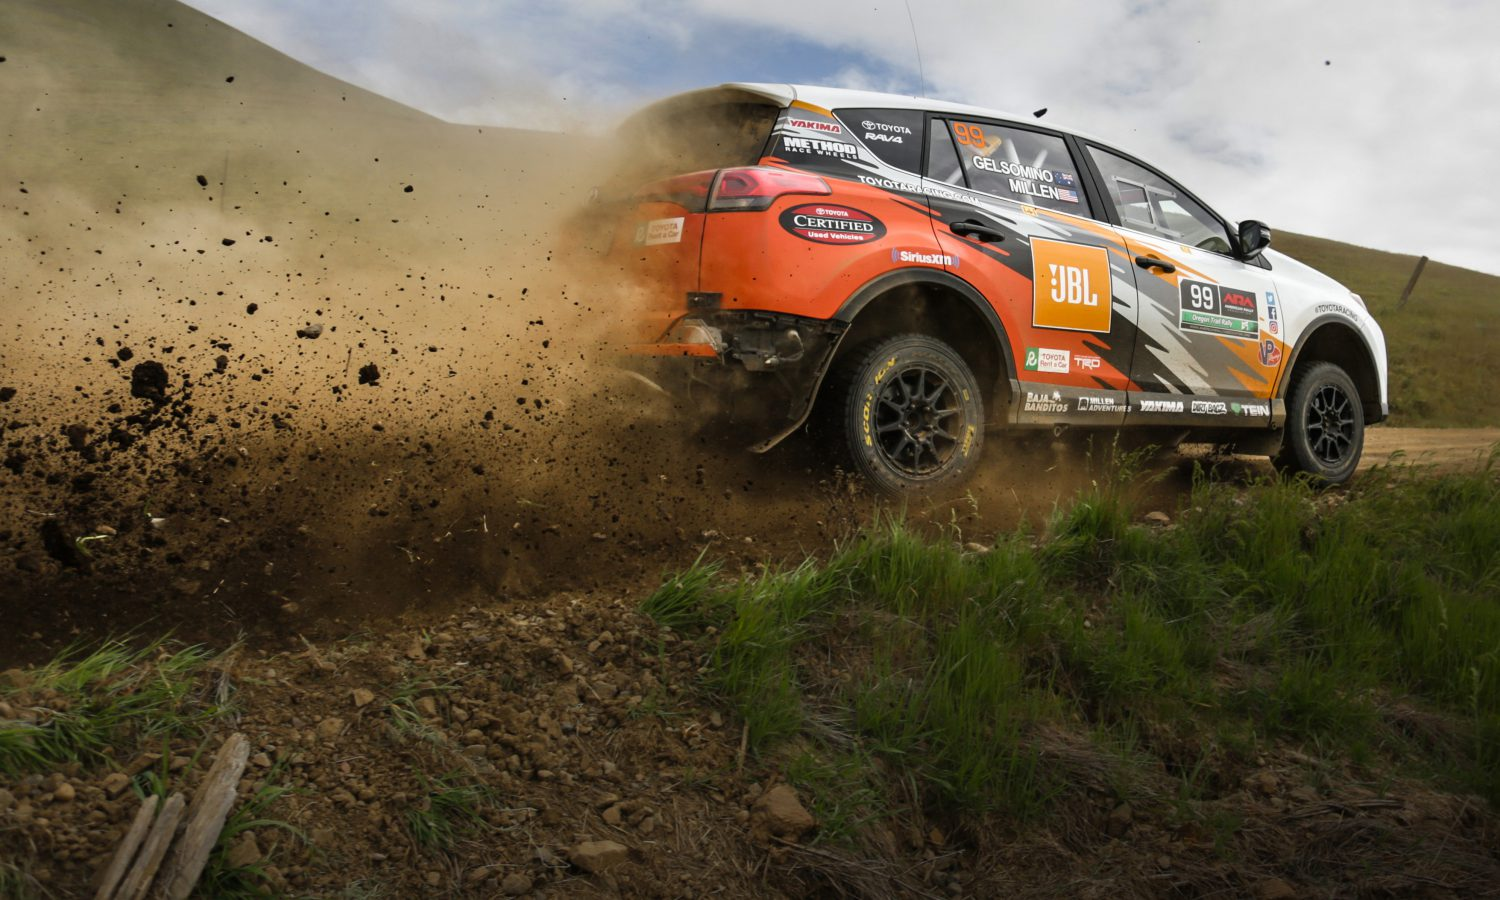 Dirt Races, Road Course on Tap for Toyota Racers This Weekend